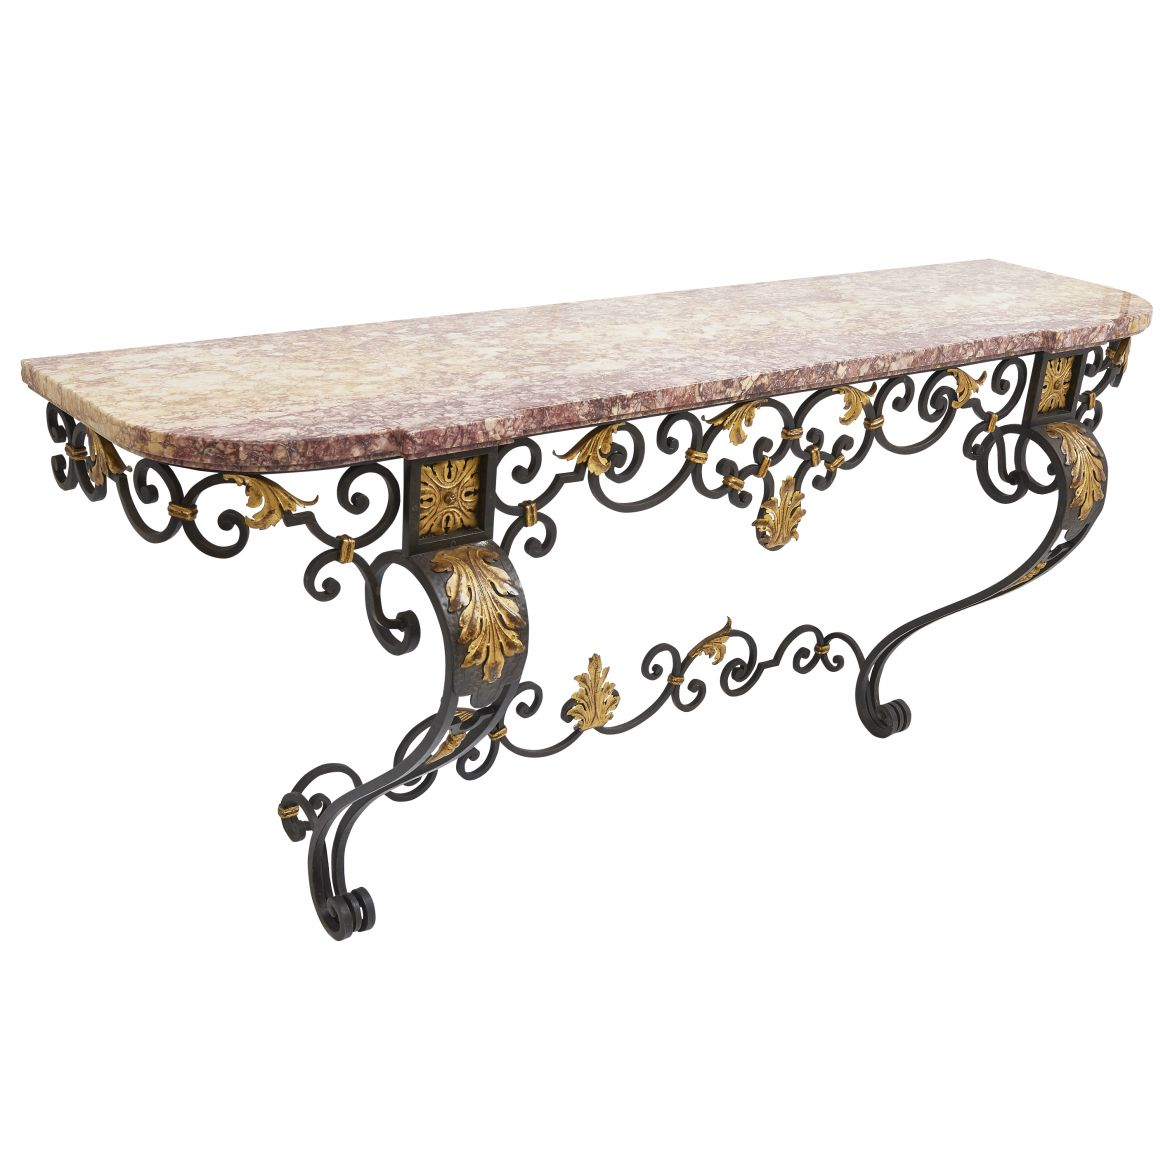 Wrought Iron And Brocatelle Marble Console